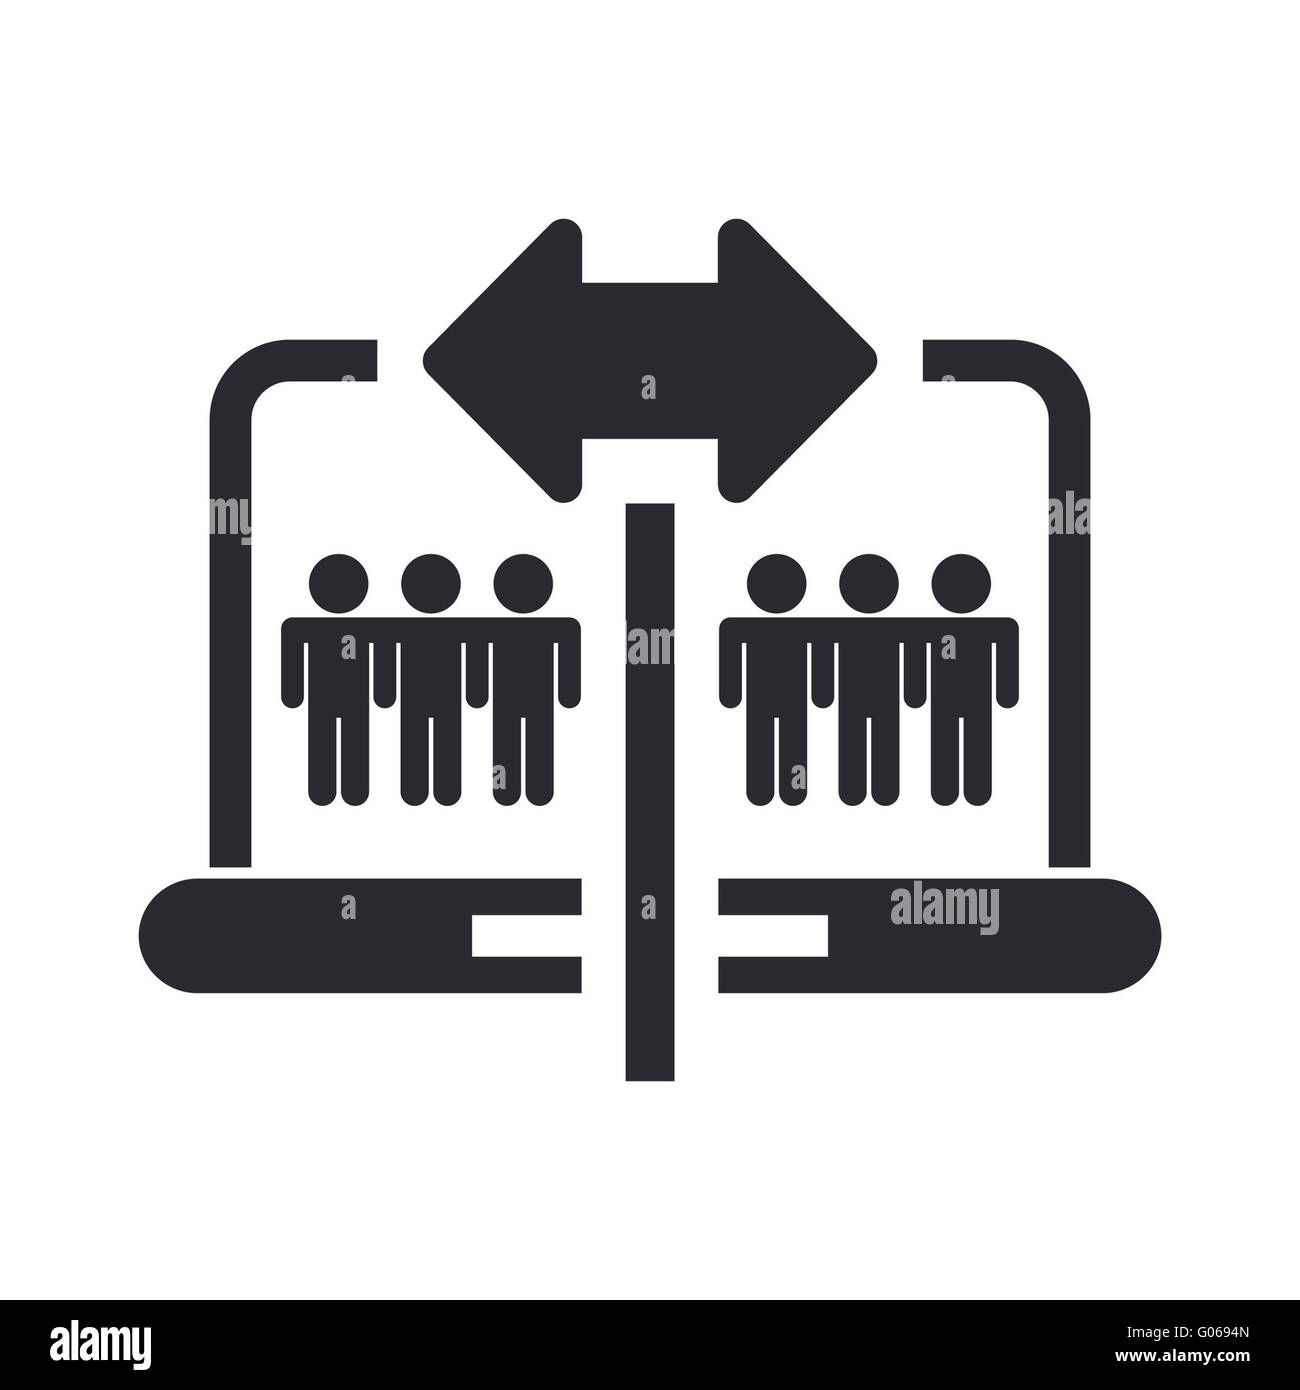 Vector illustration of isolated pc sharing icon - Stock Image